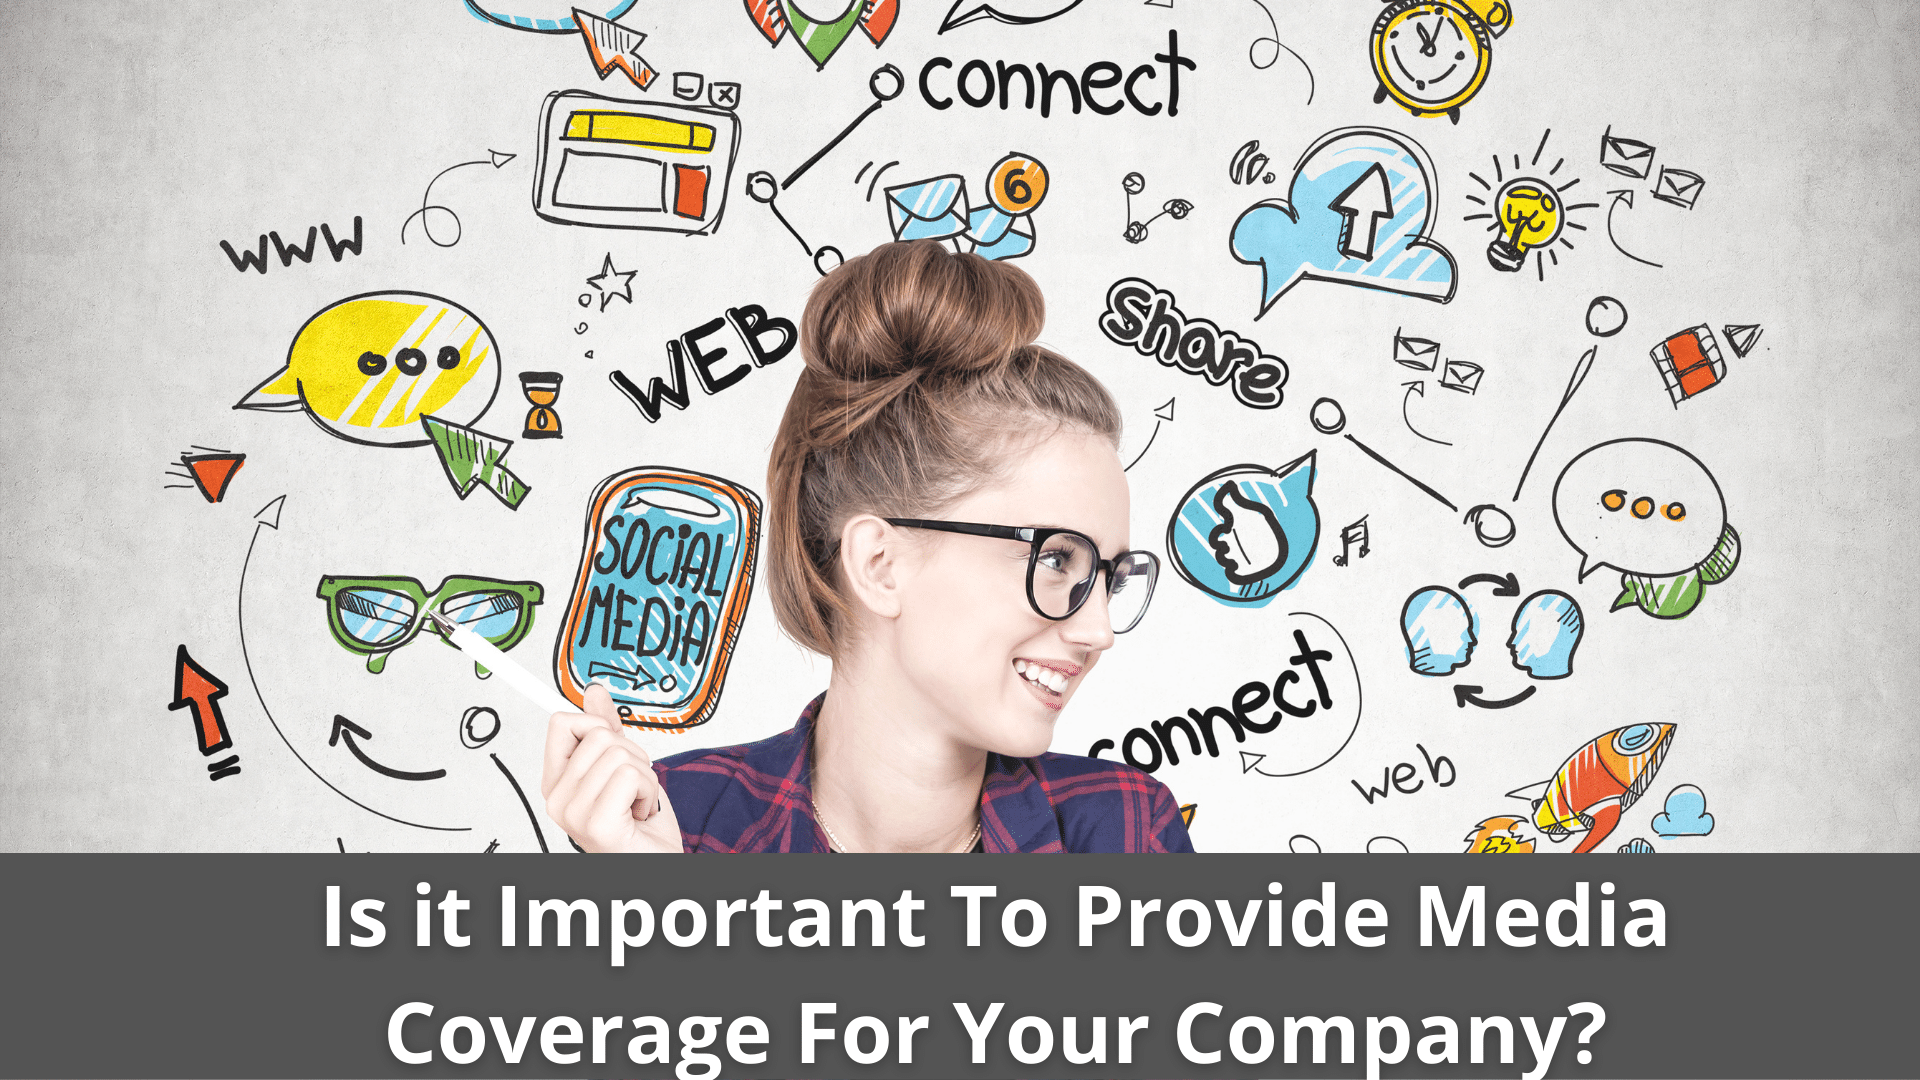 Is it Important To Provide Media Coverage For Your Company? 39